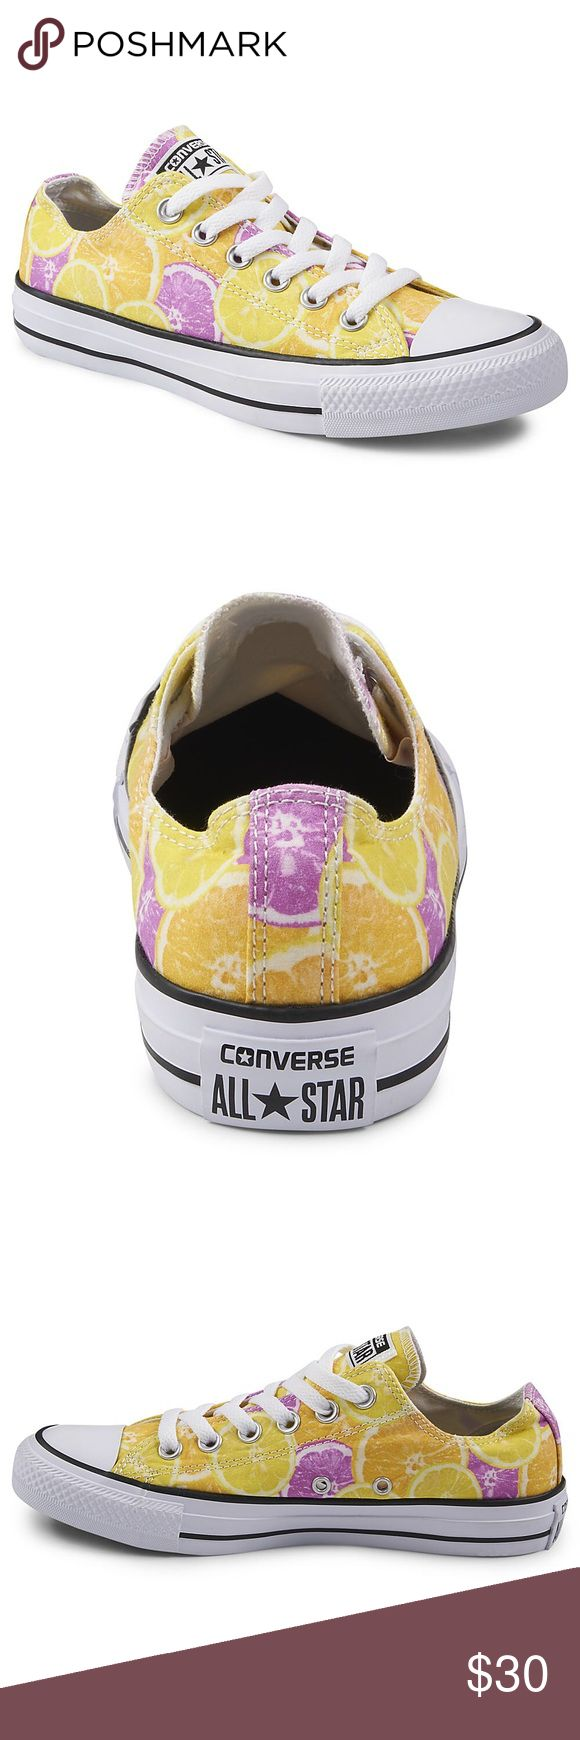 Lemon Pattern Converse Super cute lemon wedge fruit design converse! Cute pop of color for any outfit! Have been worn but are in great shape! Women's size 5! Bundle for discount! Converse Shoes Sneakers